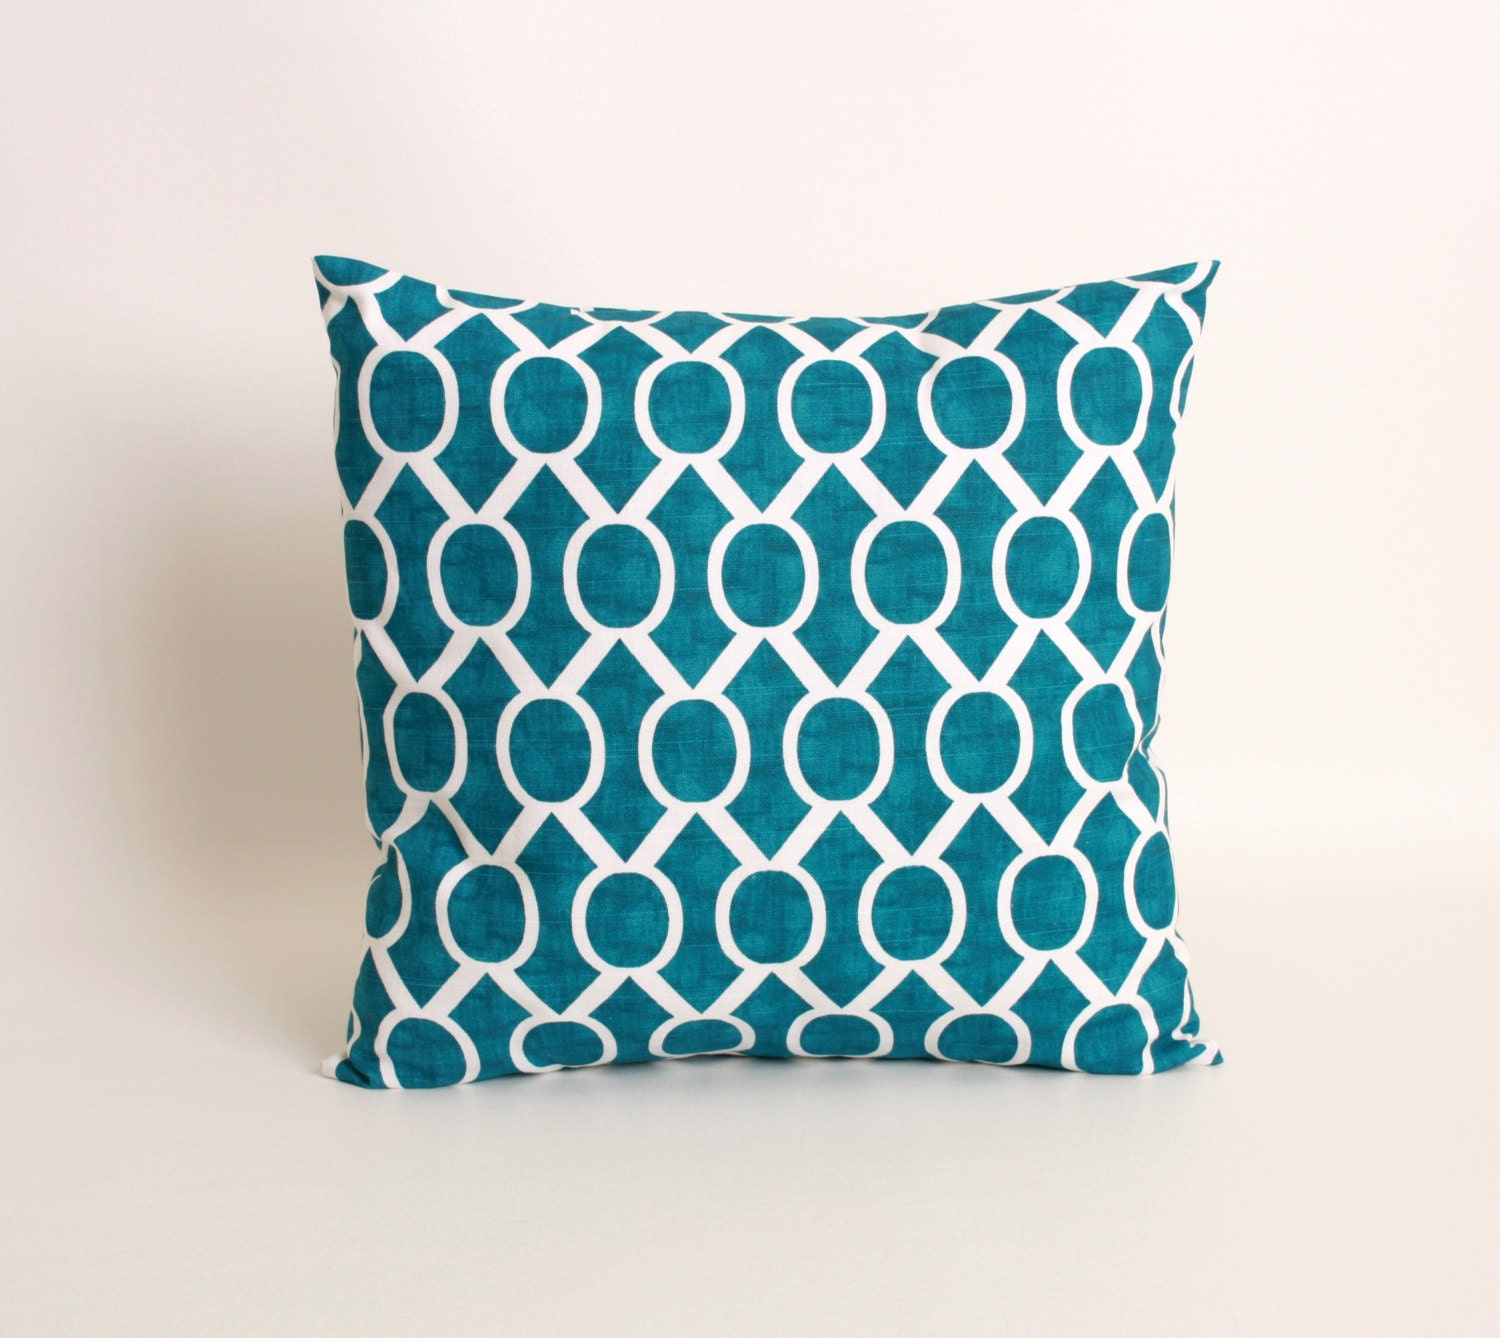 Throw Pillow Covers Teal : Teal Throw Pillow Cover Teal Blue Cushion by DimensionsHomeDecor